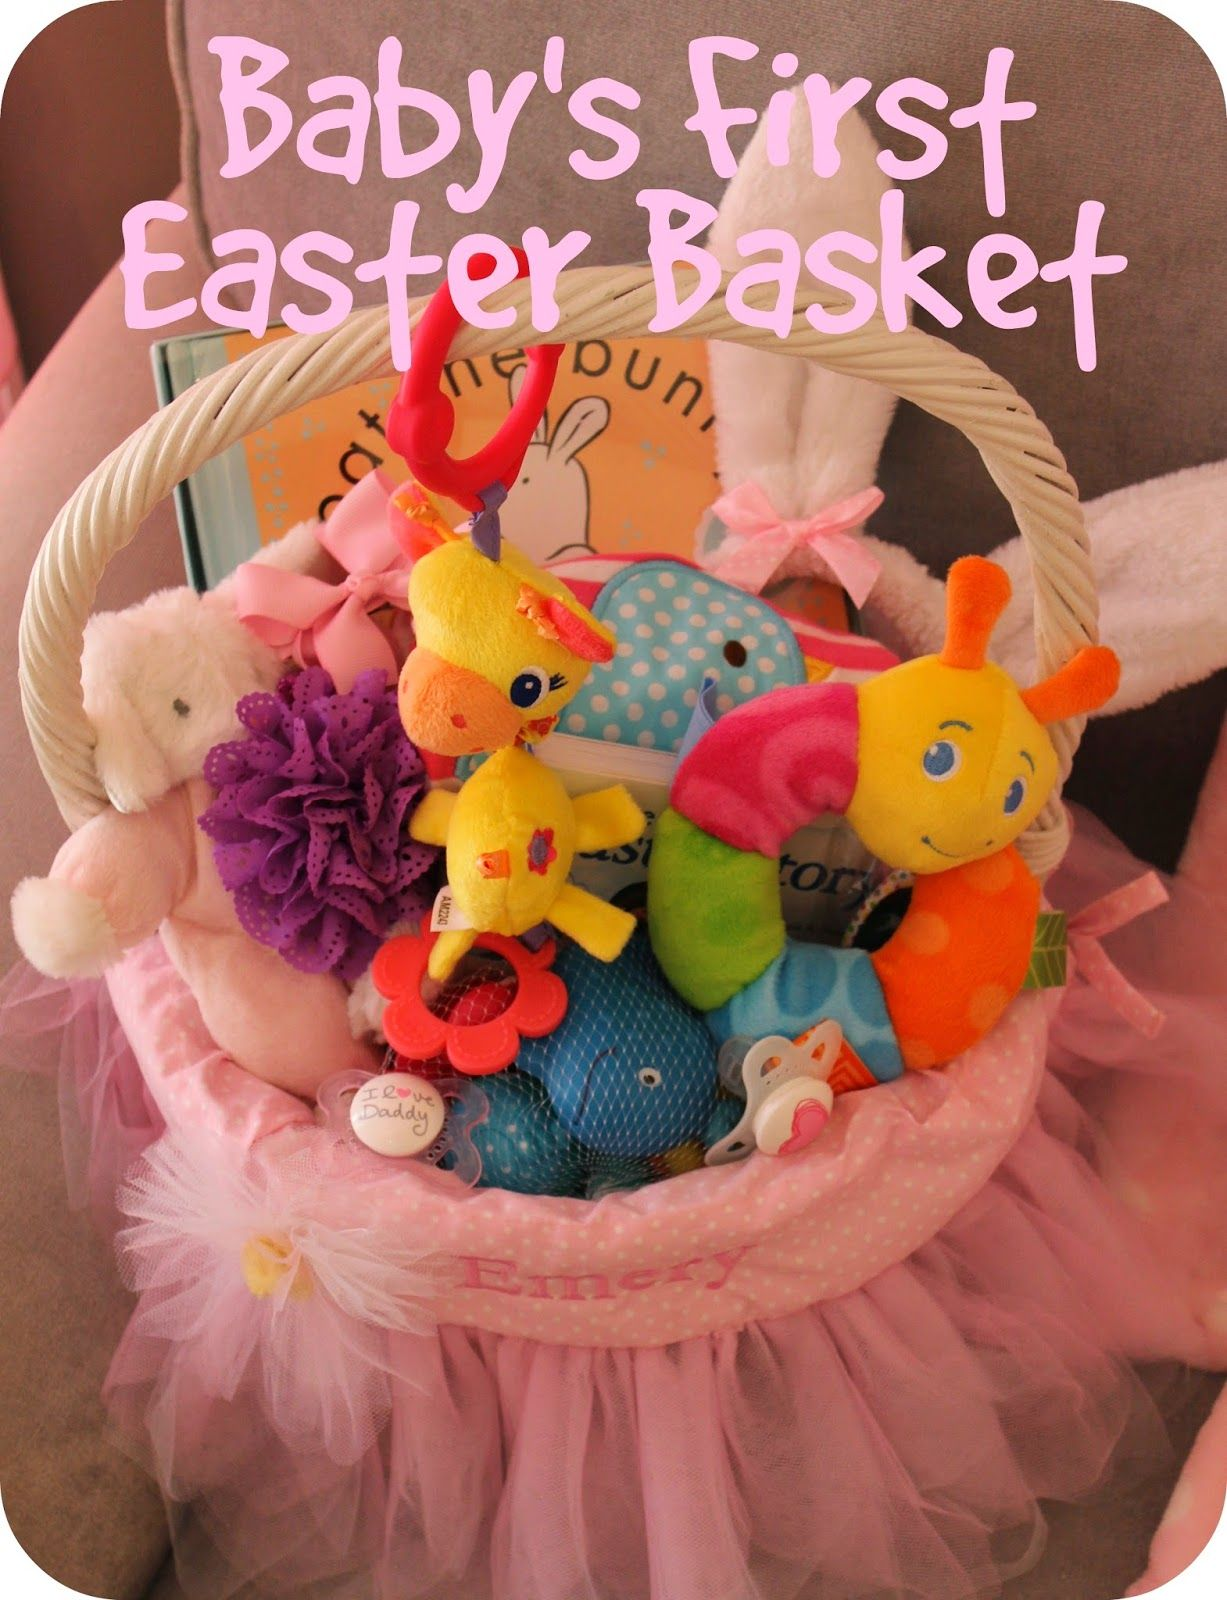 Babys first easter basket ideas for a newborn baby pinterest babys first easter basket ideas for a newborn negle